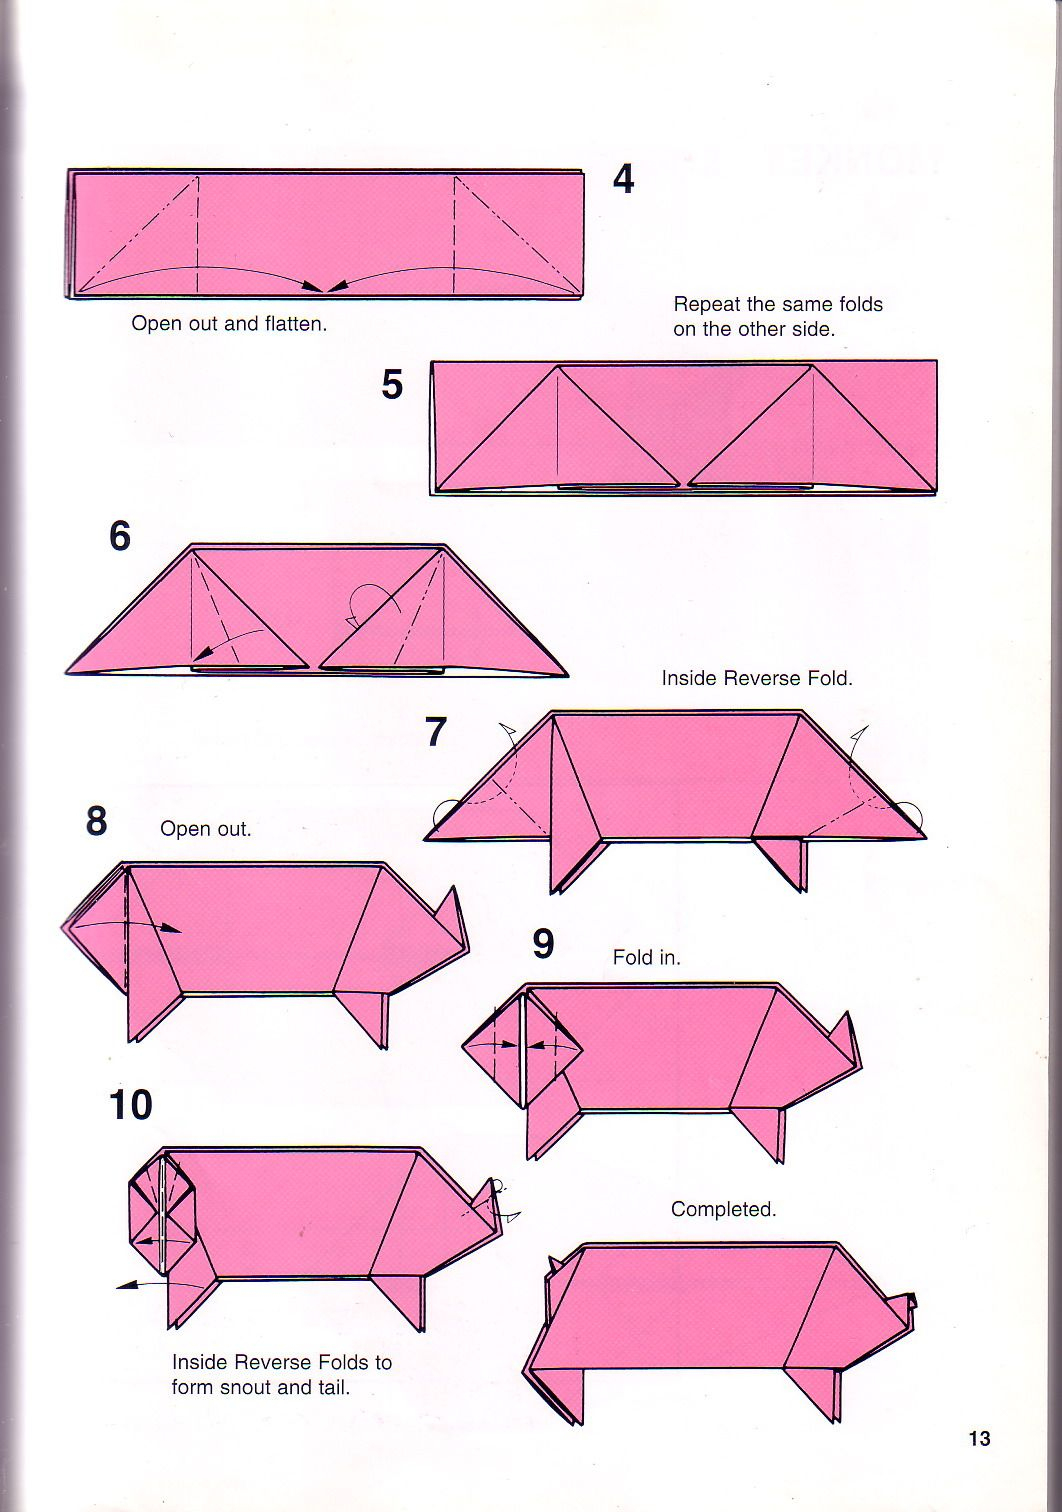 Pig Origami Instructions   Origami Printable Instructions - Free Easy Origami Instructions Printable